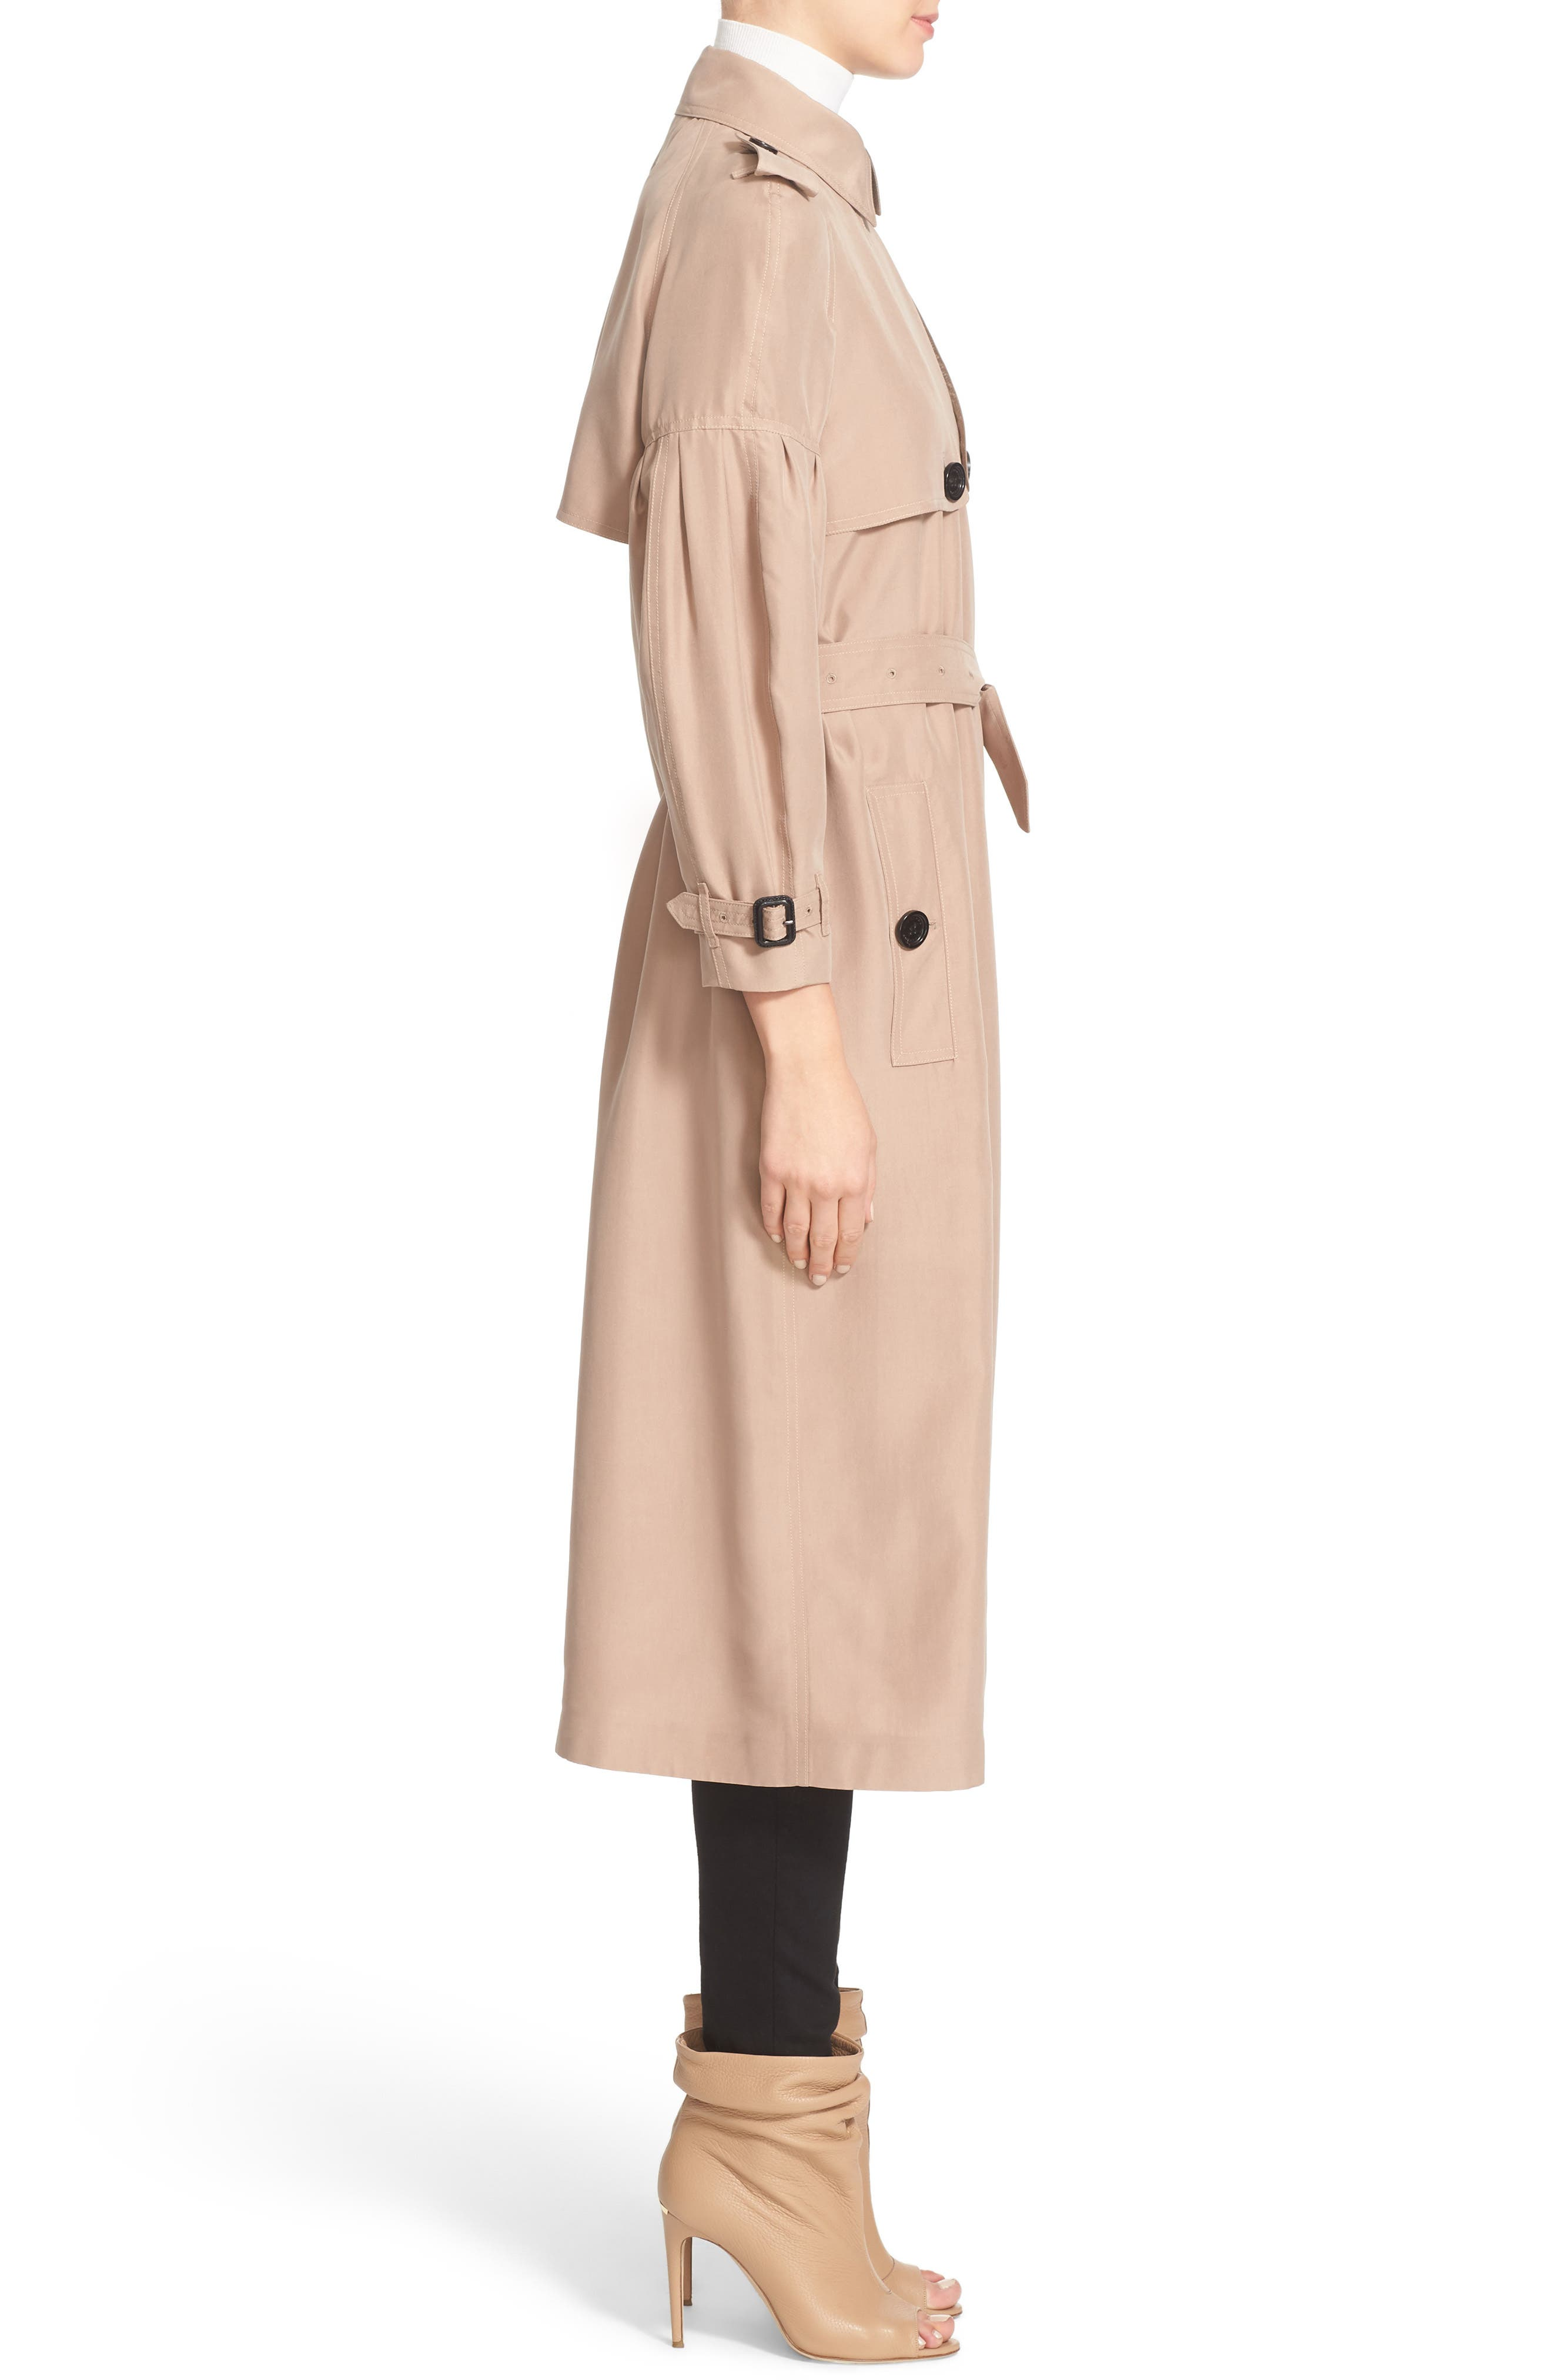 BURBERRY, Maythorne Mulberry Silk Trench, Alternate thumbnail 4, color, 250